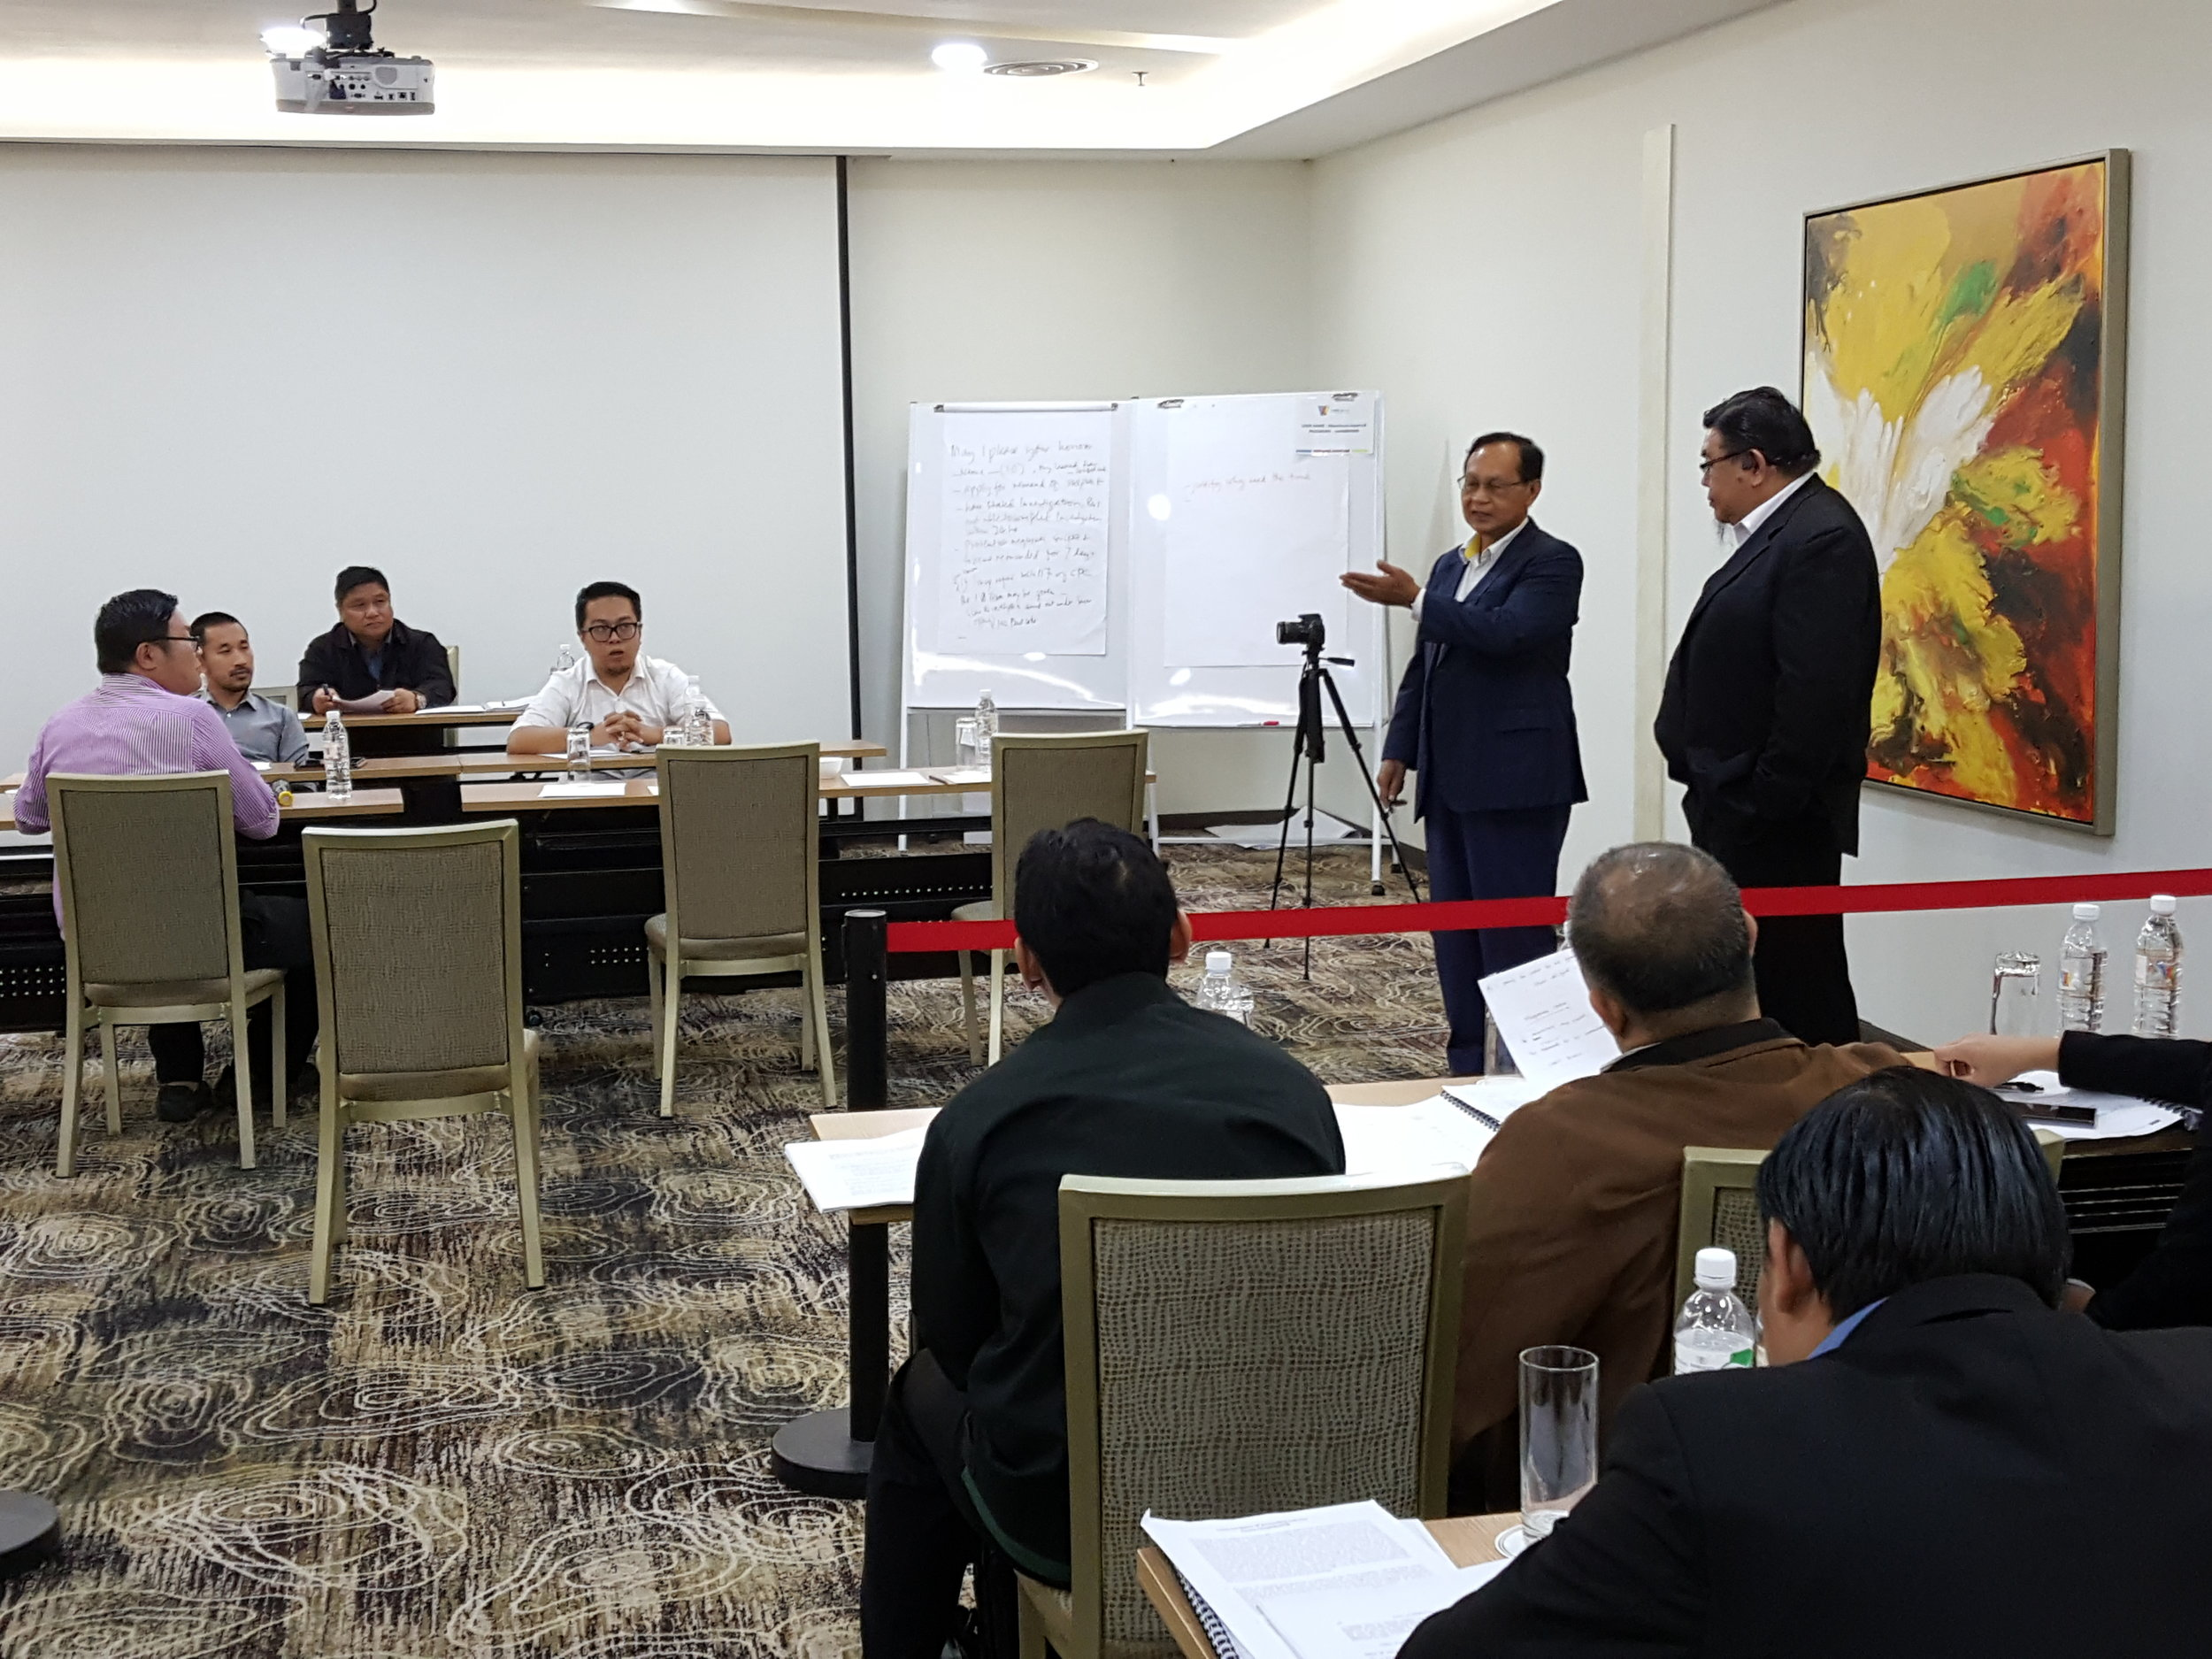 Romie (second right) and Joseph (right) conduct the mock trial simulation during the training programme.